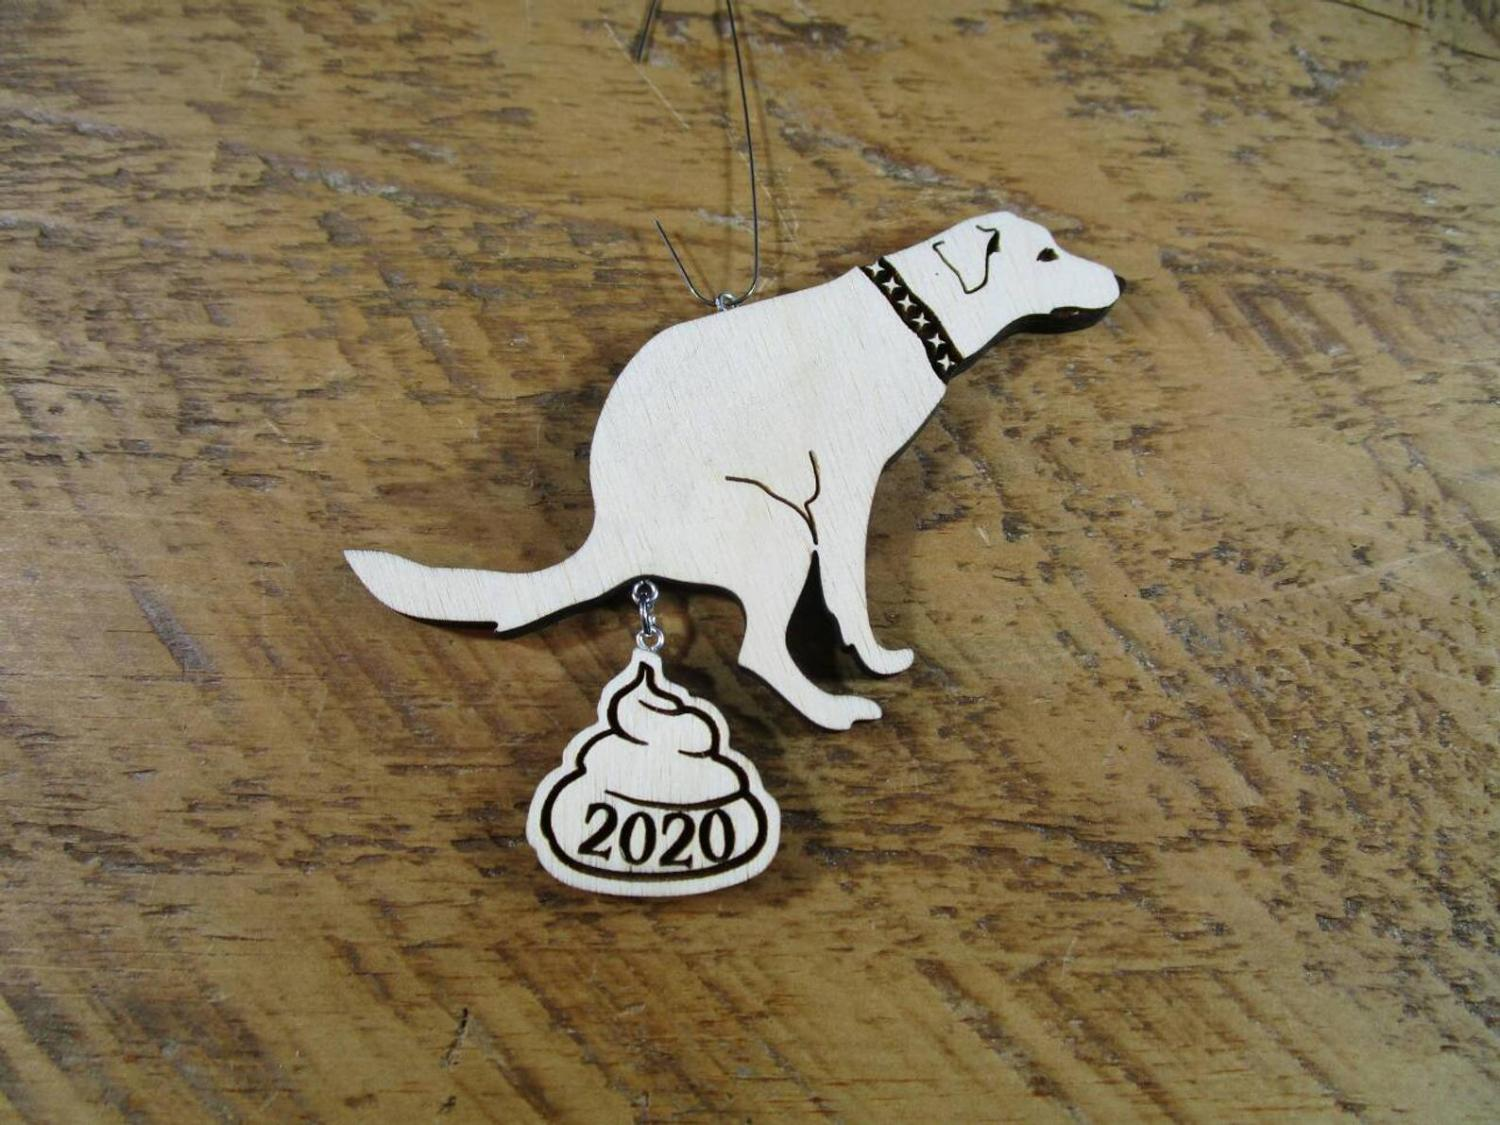 Dog Poop 2020 Christmas Ornament - Funny dog pooping on 2020 ornament